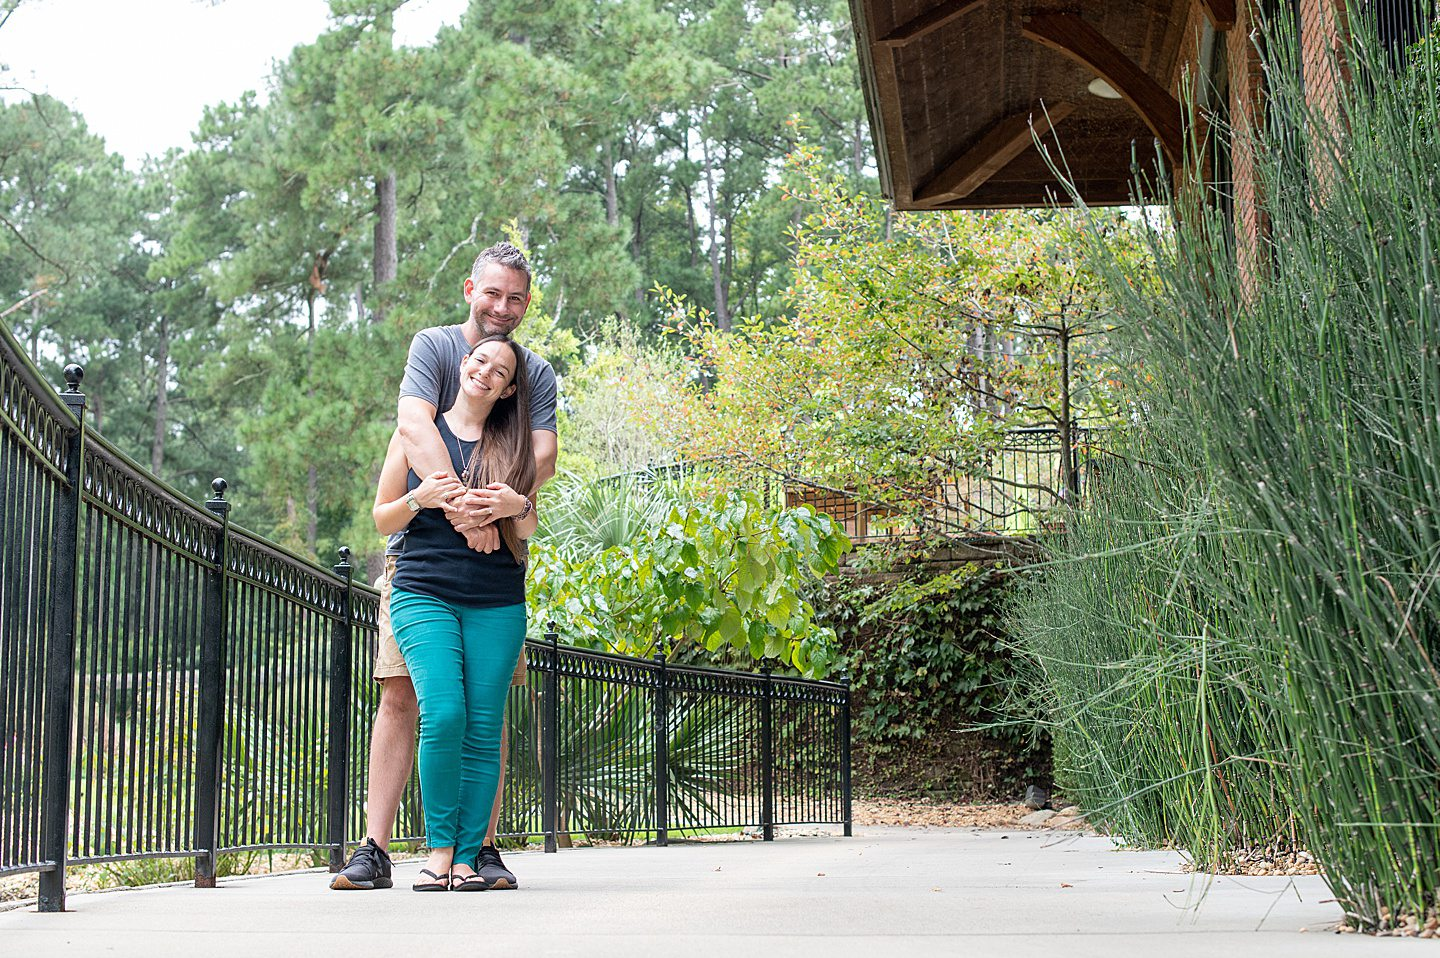 A couple embracing at Cape Fear Botanical Garden in Fayetteville, NC